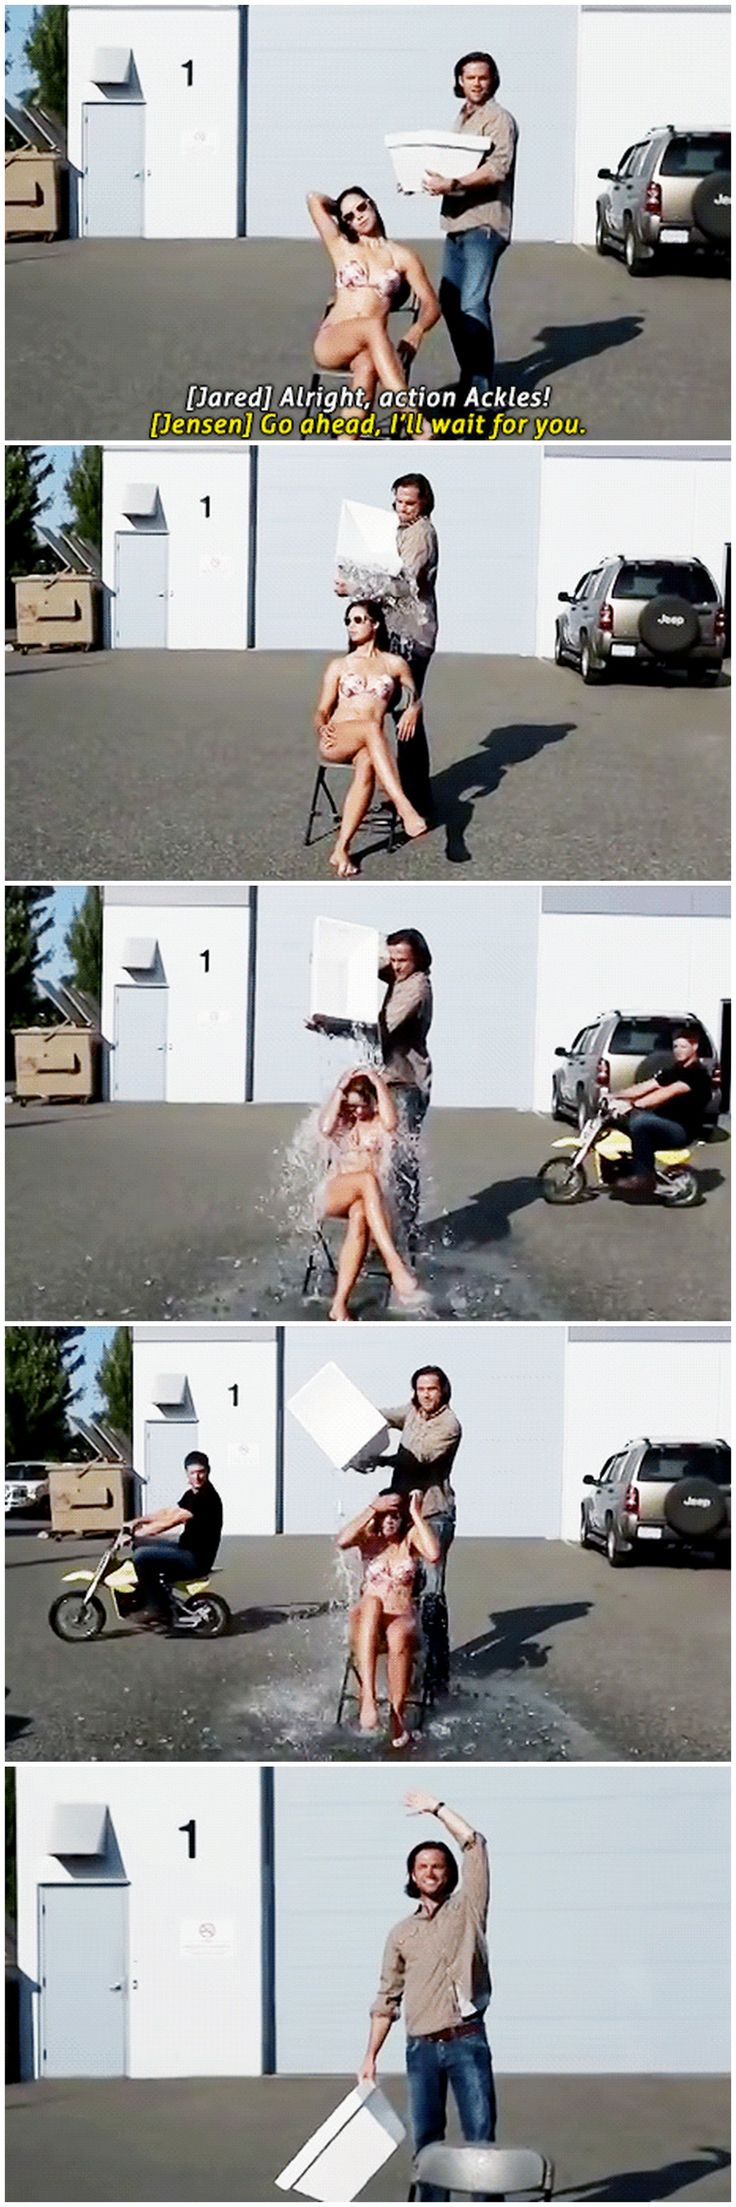 [gifset] Jared and Jensen helping out on Ingrid Libera's Ice Bucket Challenge and making it all their own. Only these two!